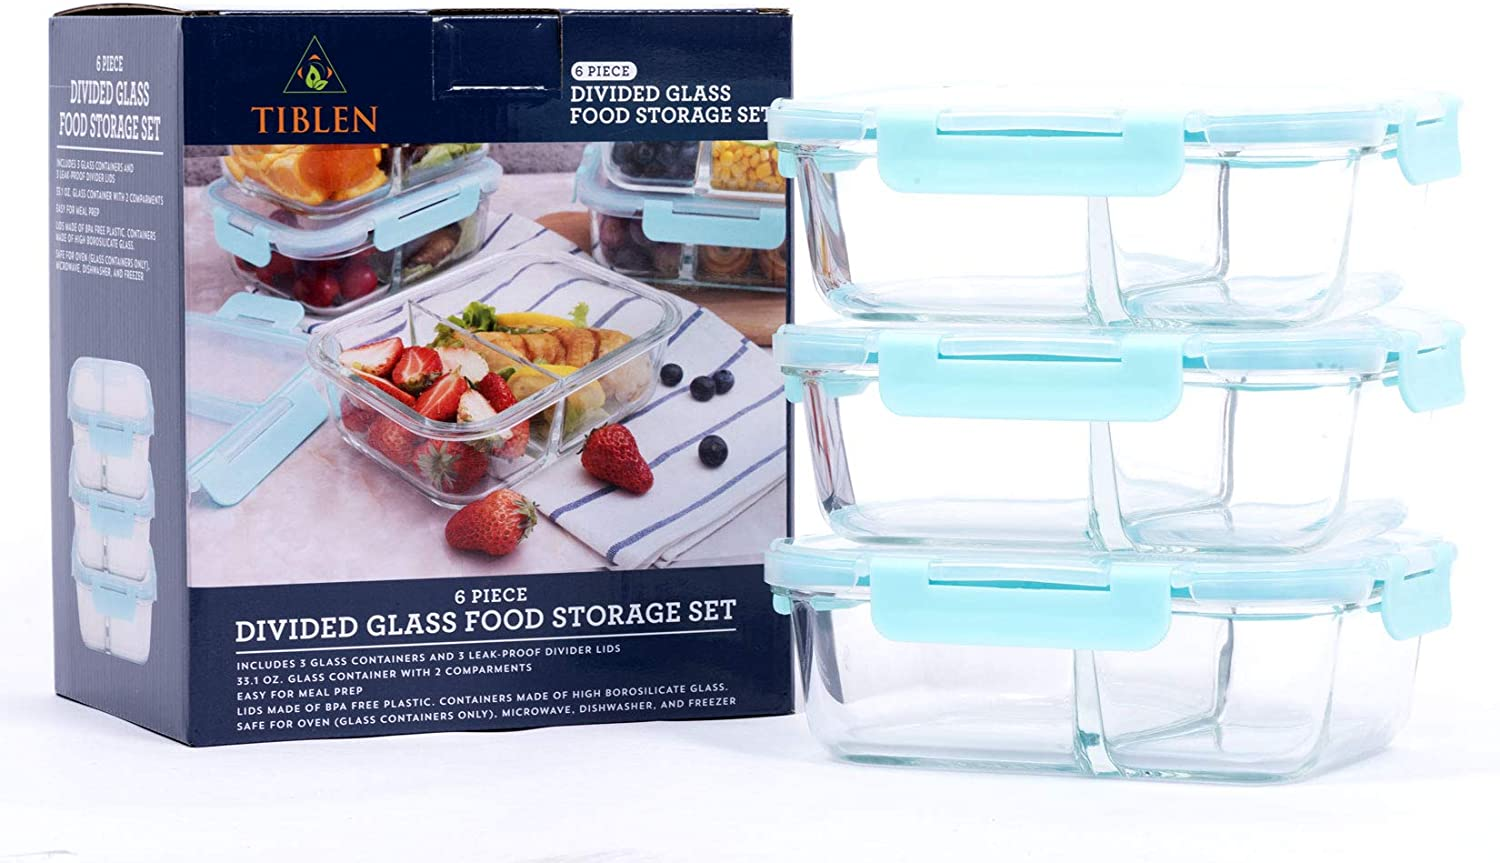 TIBLEN 3-Pack (34 oz each) 2 Compartment Divided Glass Food Storage Airtight & Leakproof Containers Set with Snap Lock Lids, Safe for Dishwasher, Oven, Microwave,Freezer, BPA Free